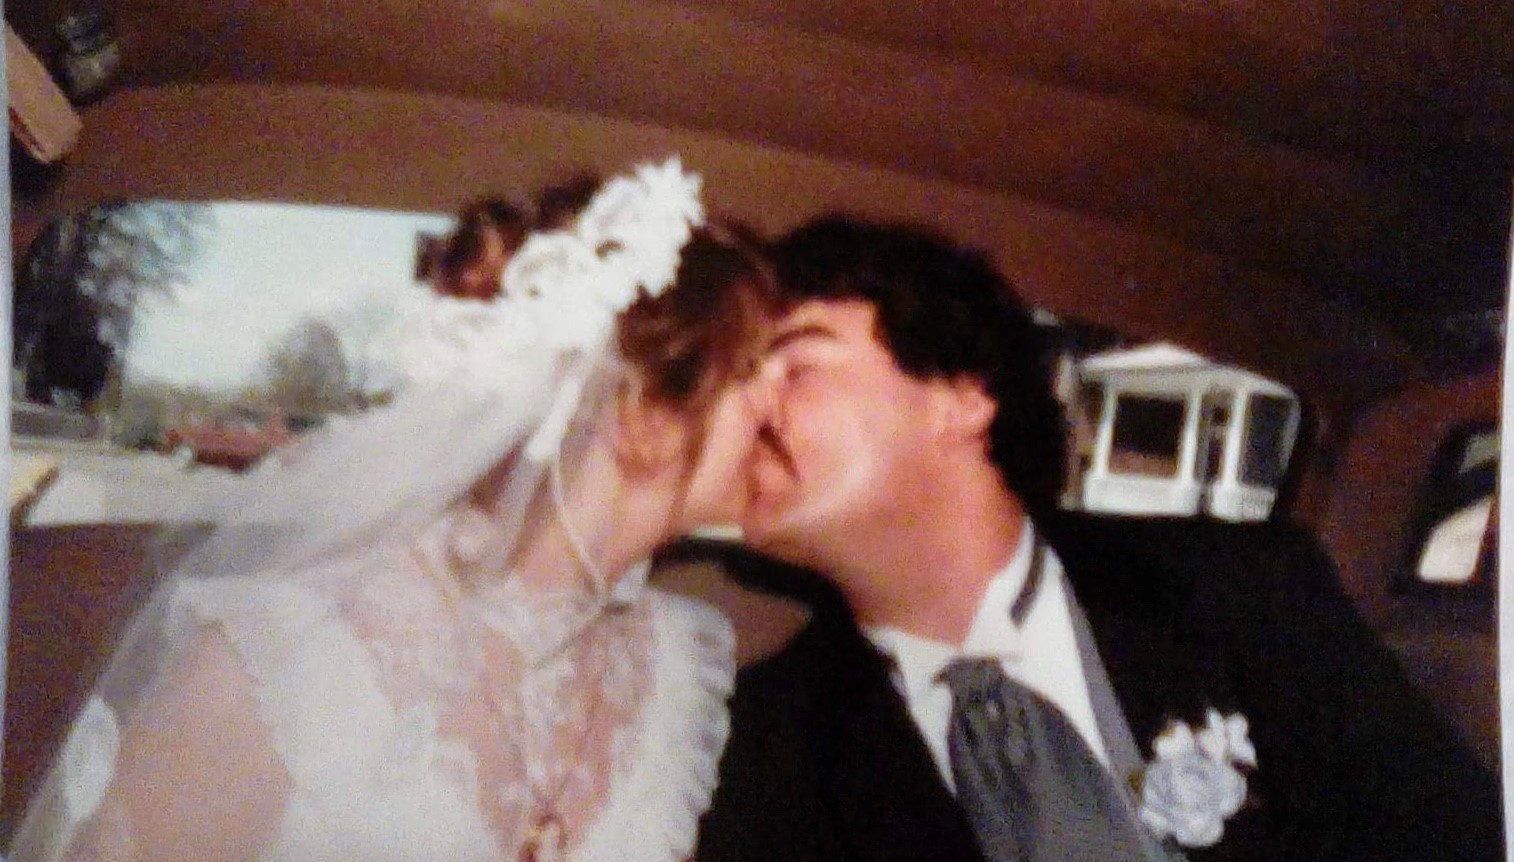 Jeannine Schaeffer when she married her now husband Pat. (Photo courtesy of Jeannine Schaeffer)